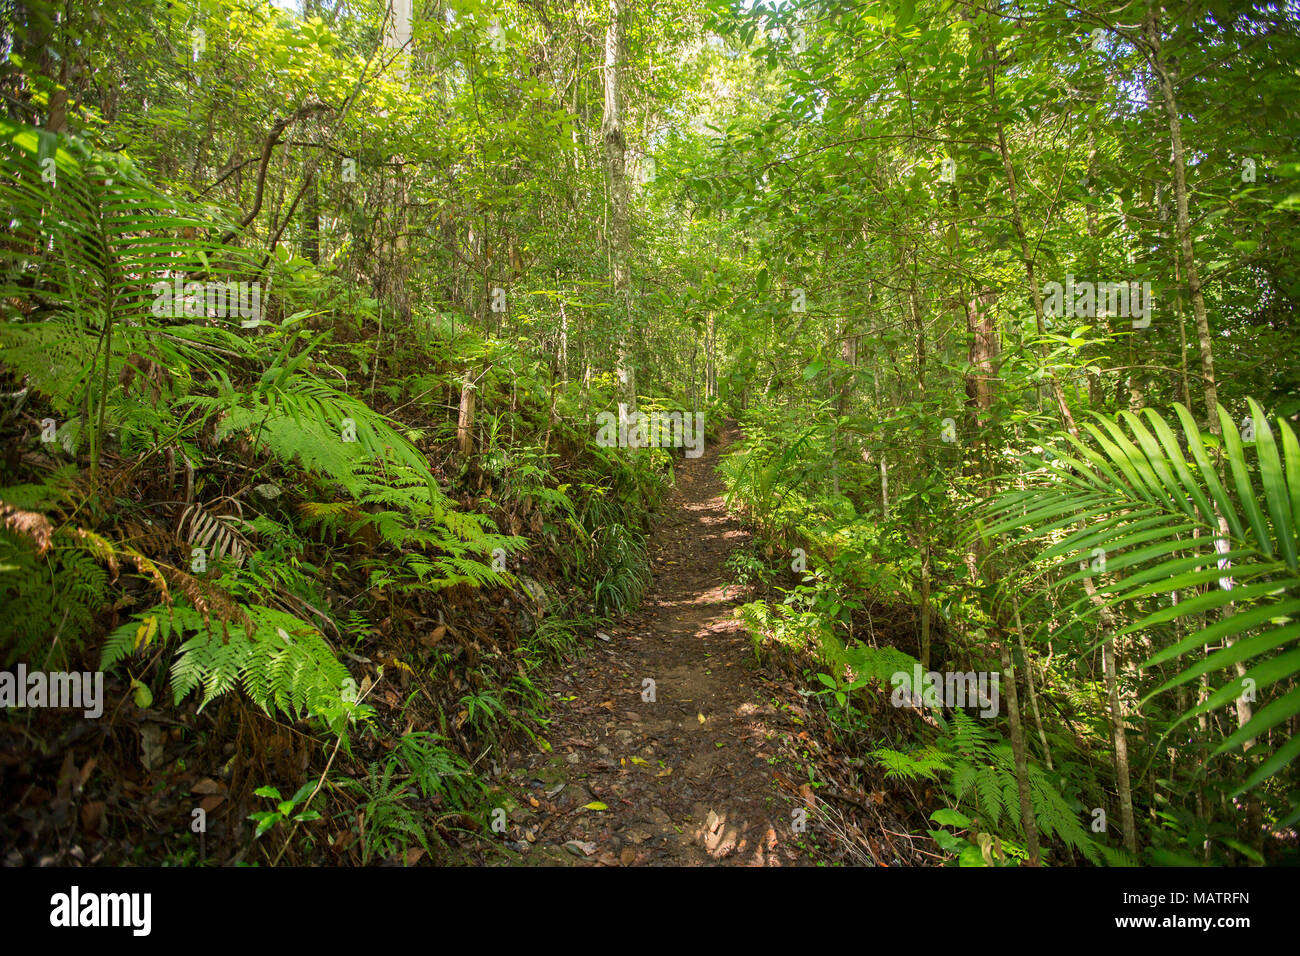 Dense emerald forests with ferns and bracken severed by narrow walking trail in Conondale Ranges National Park  Queensland Australia - Stock Image